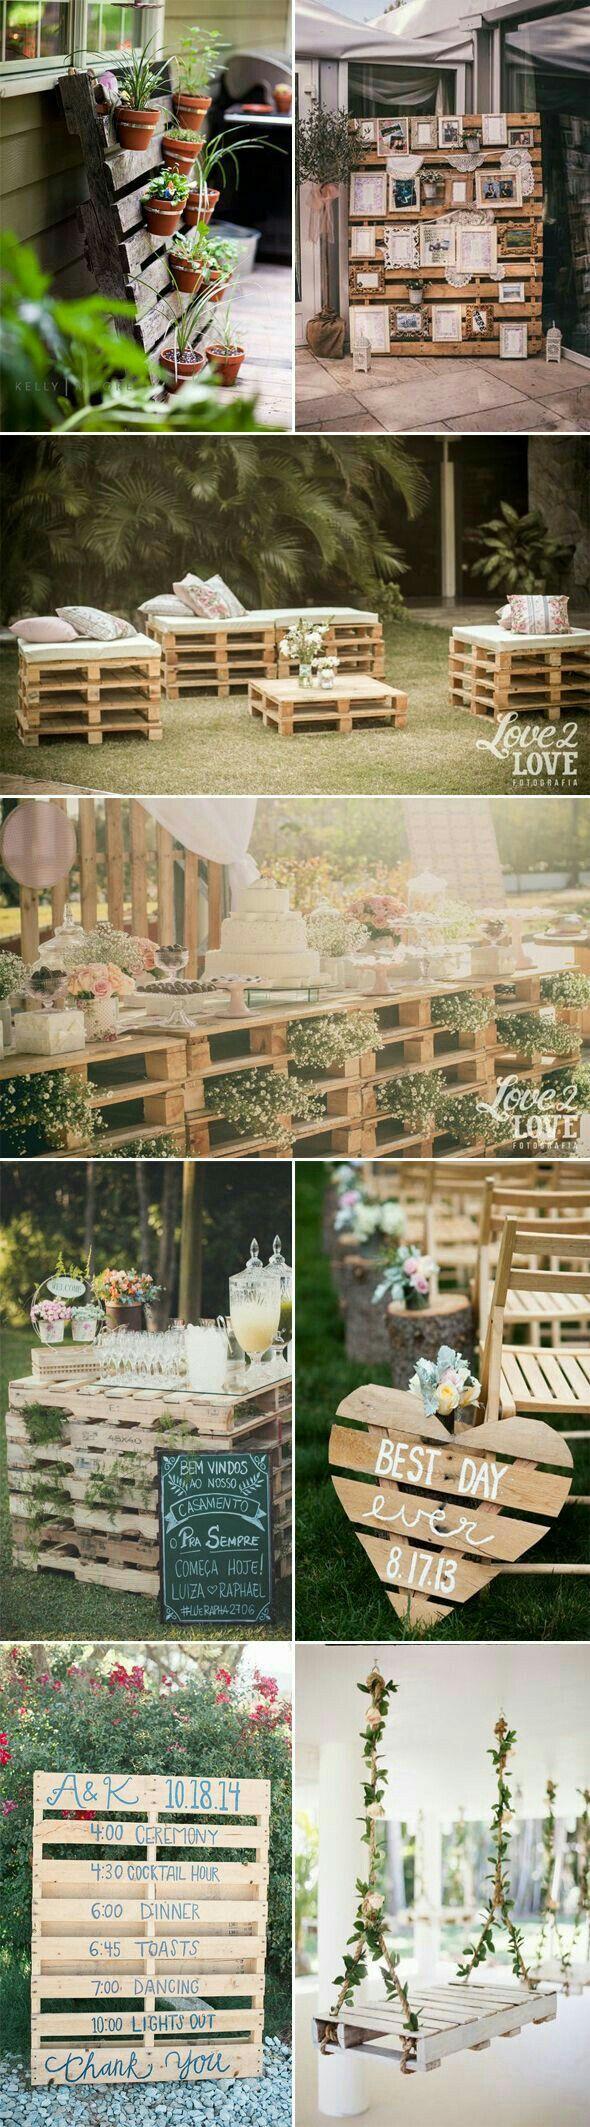 Wedding decorations using pallets october 2018 Pin by Gabriele Queiroz on Casamento  Pinterest  Wedding